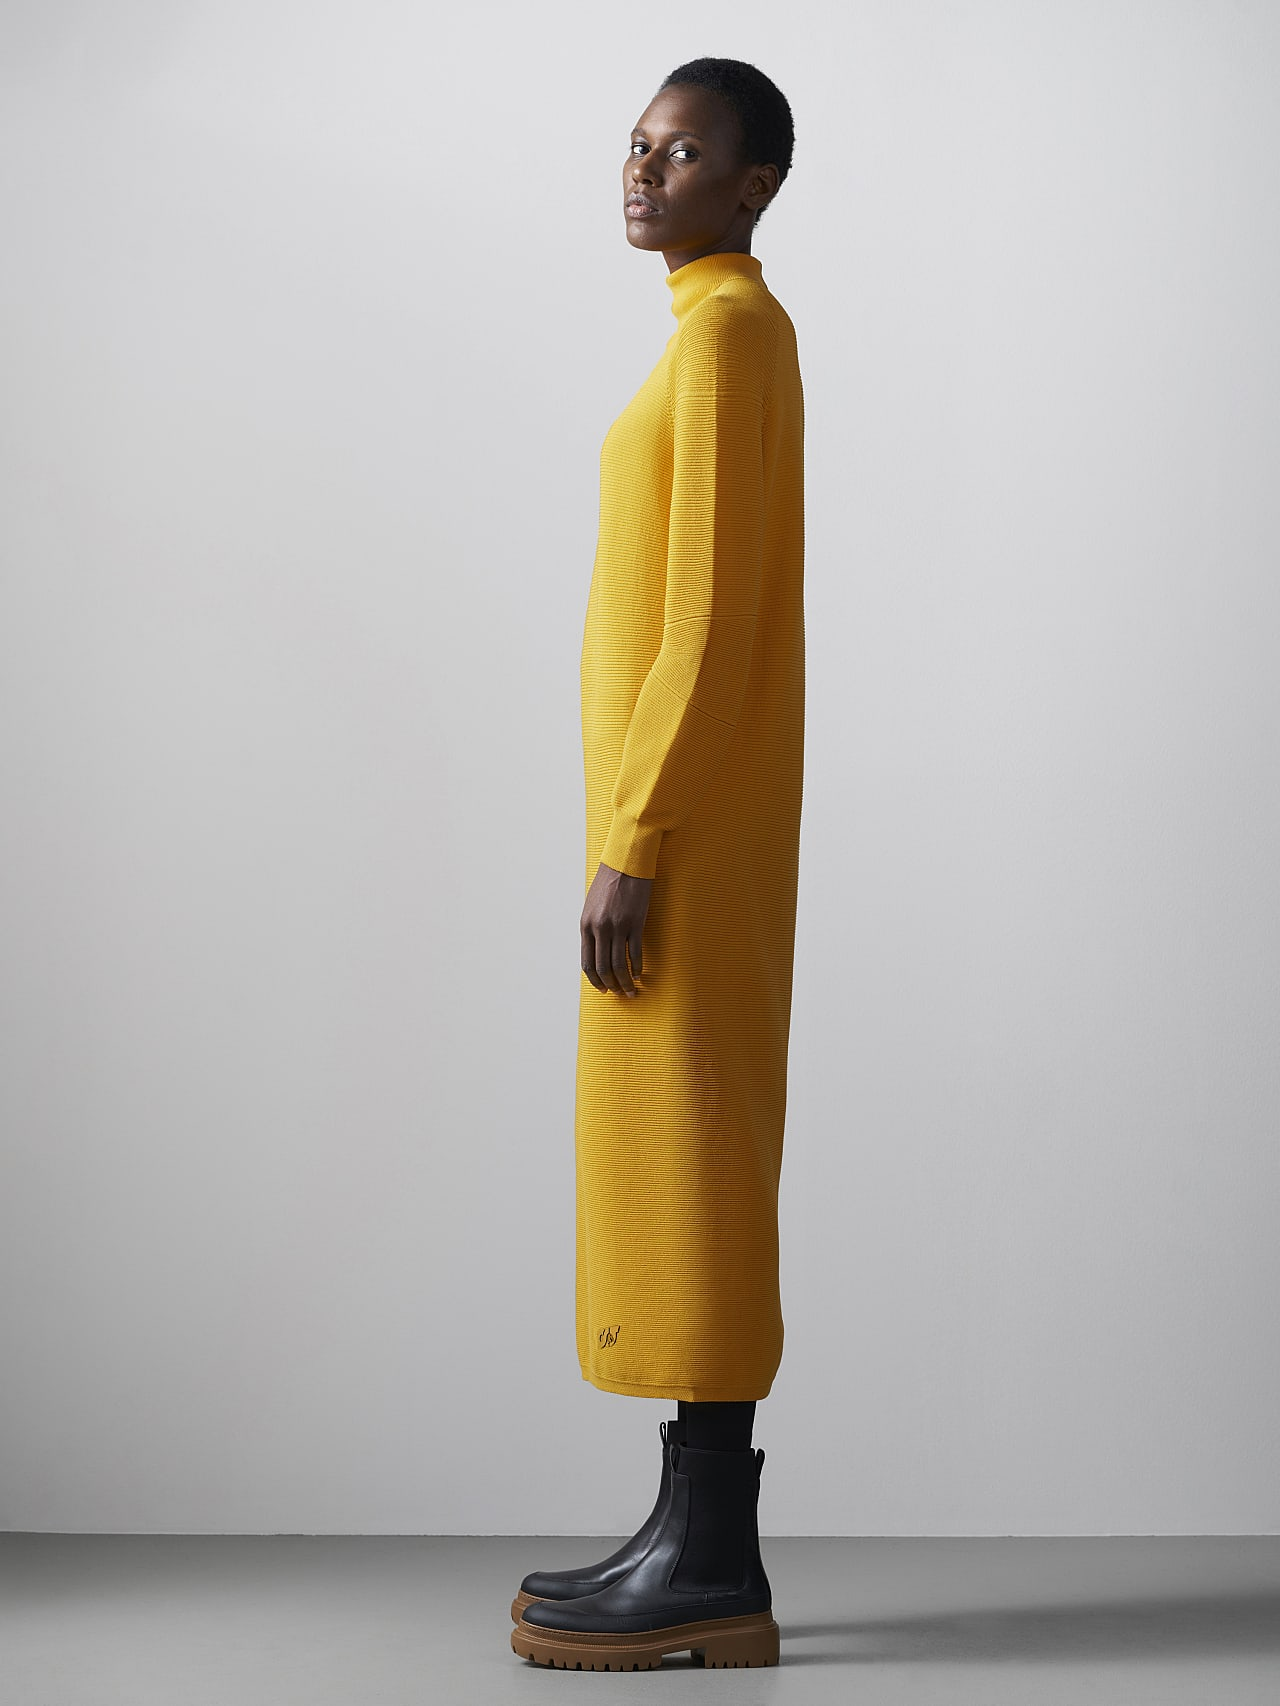 FOXEE V1.Y5.02 Seamless 3D Knit Mock-Neck Dress yellow Front Alpha Tauri